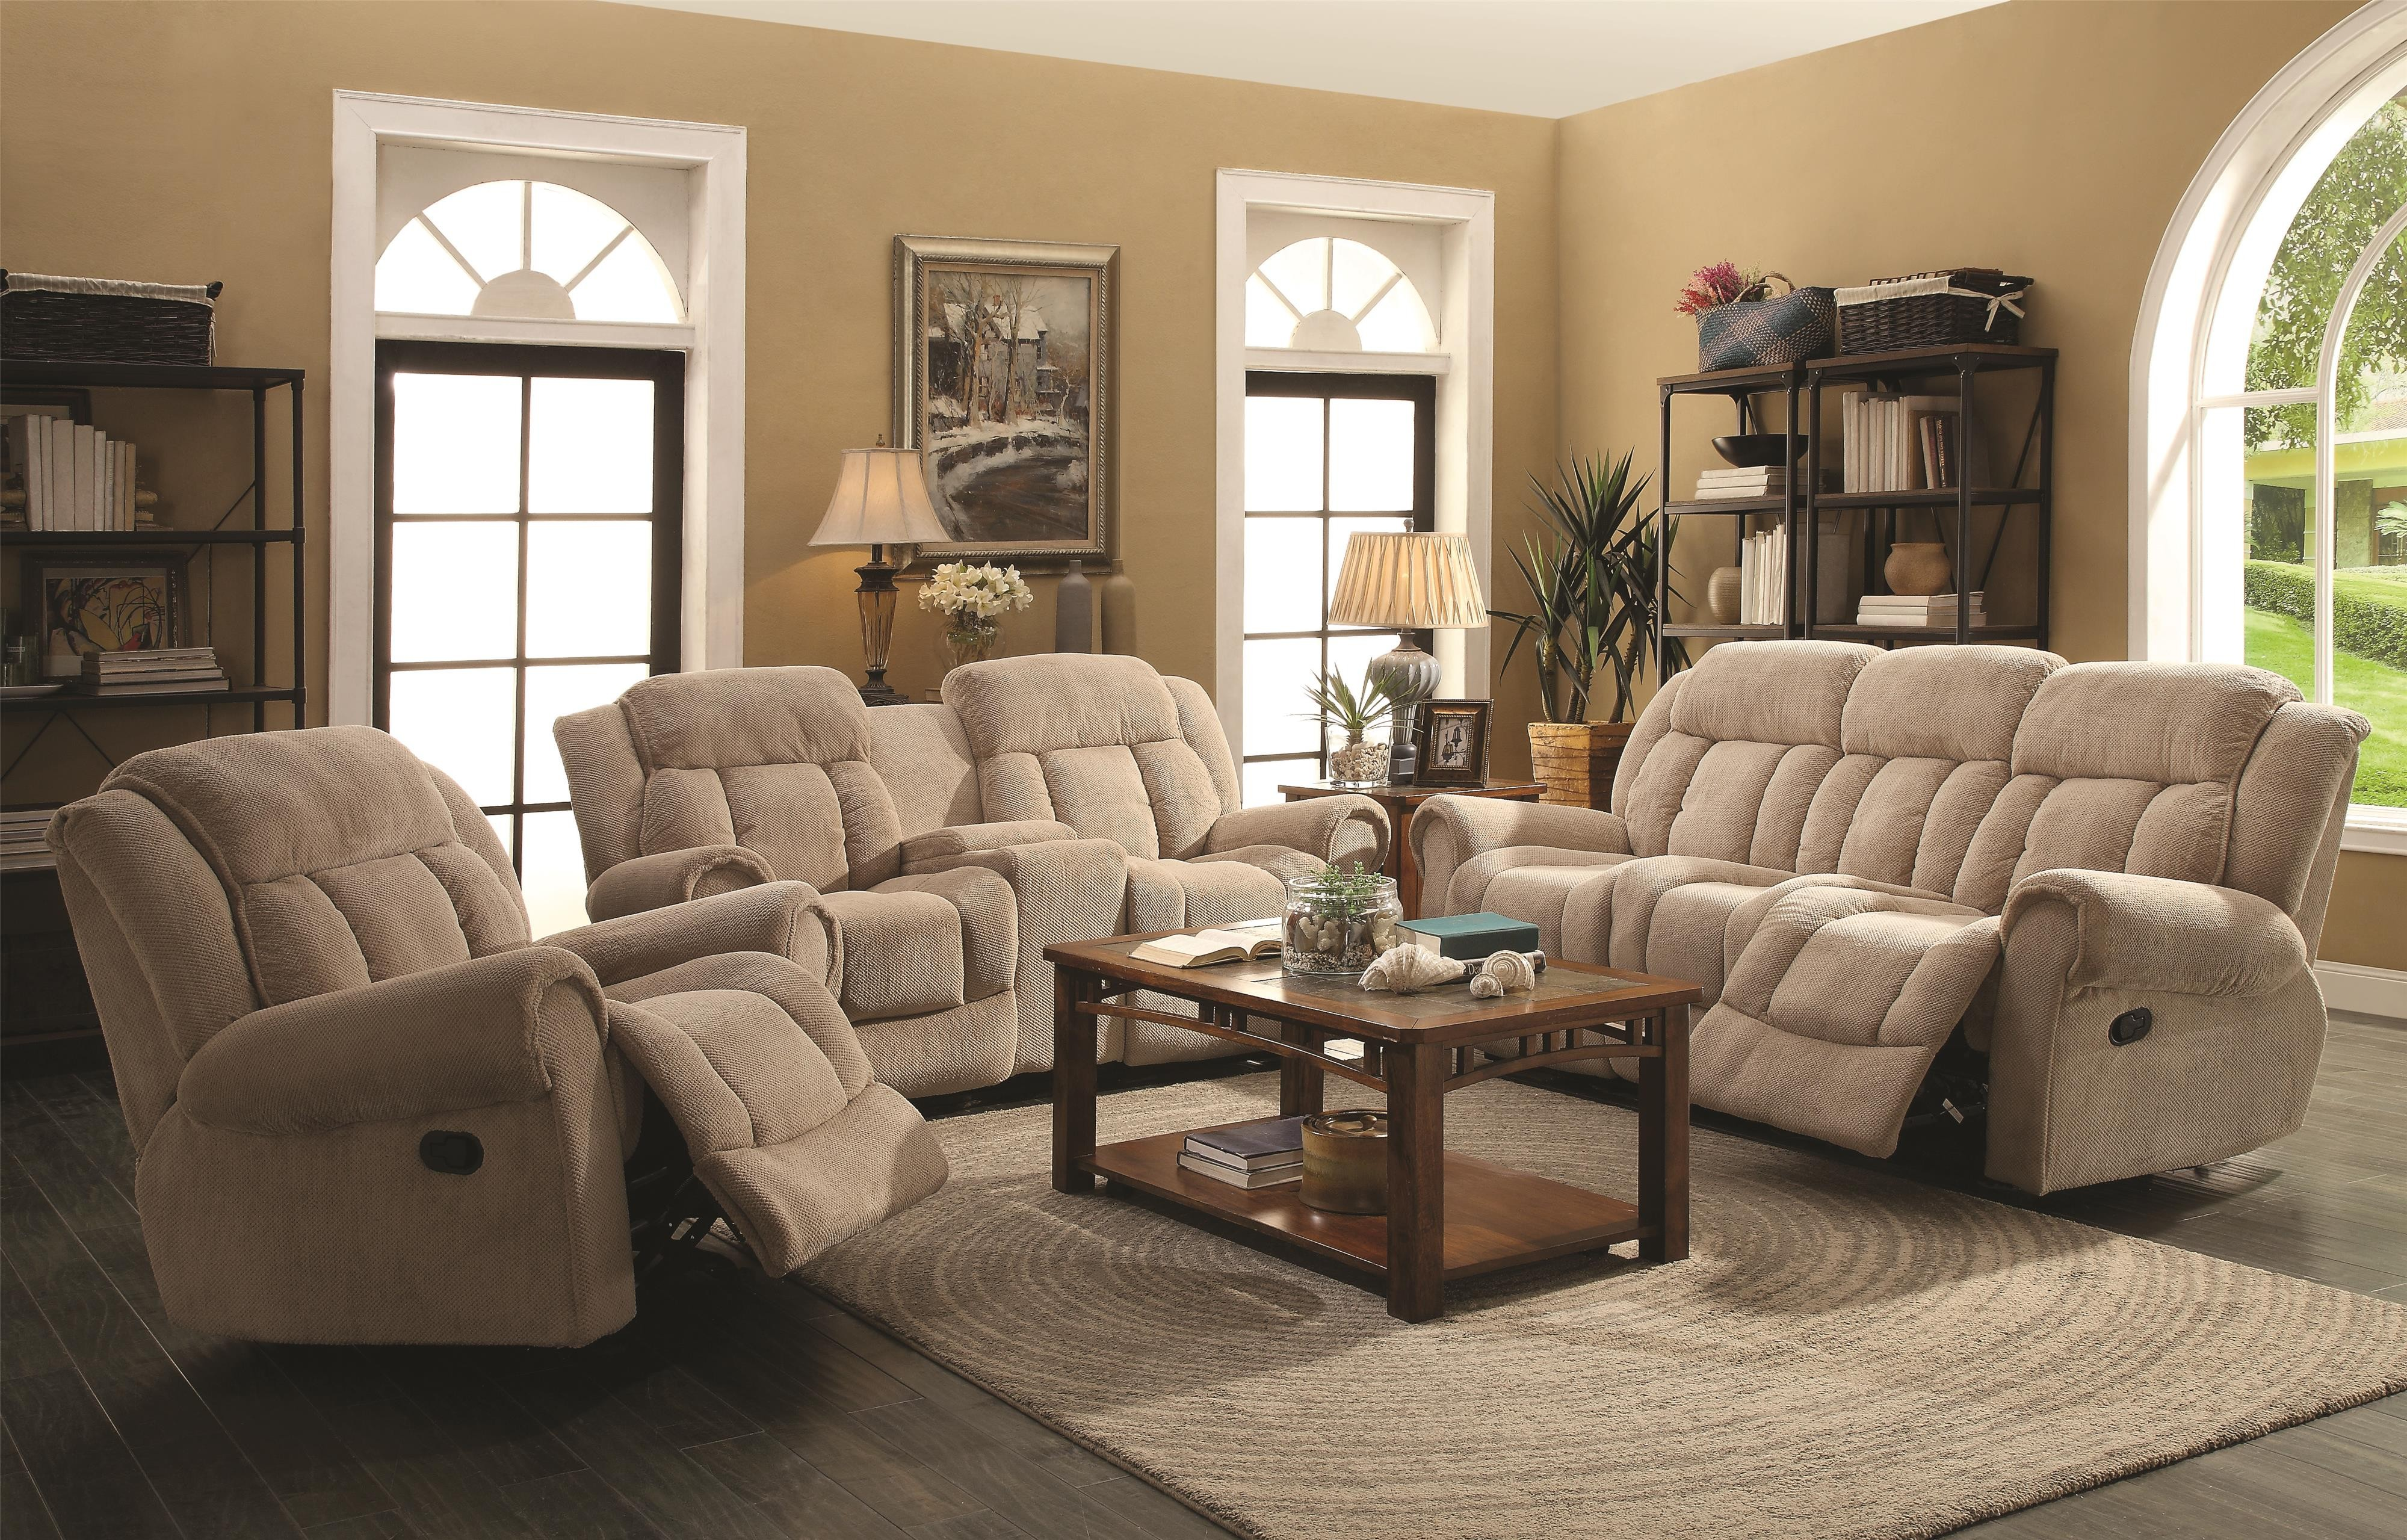 Reige motion taupe reclining living room set from coaster for Taupe color living room